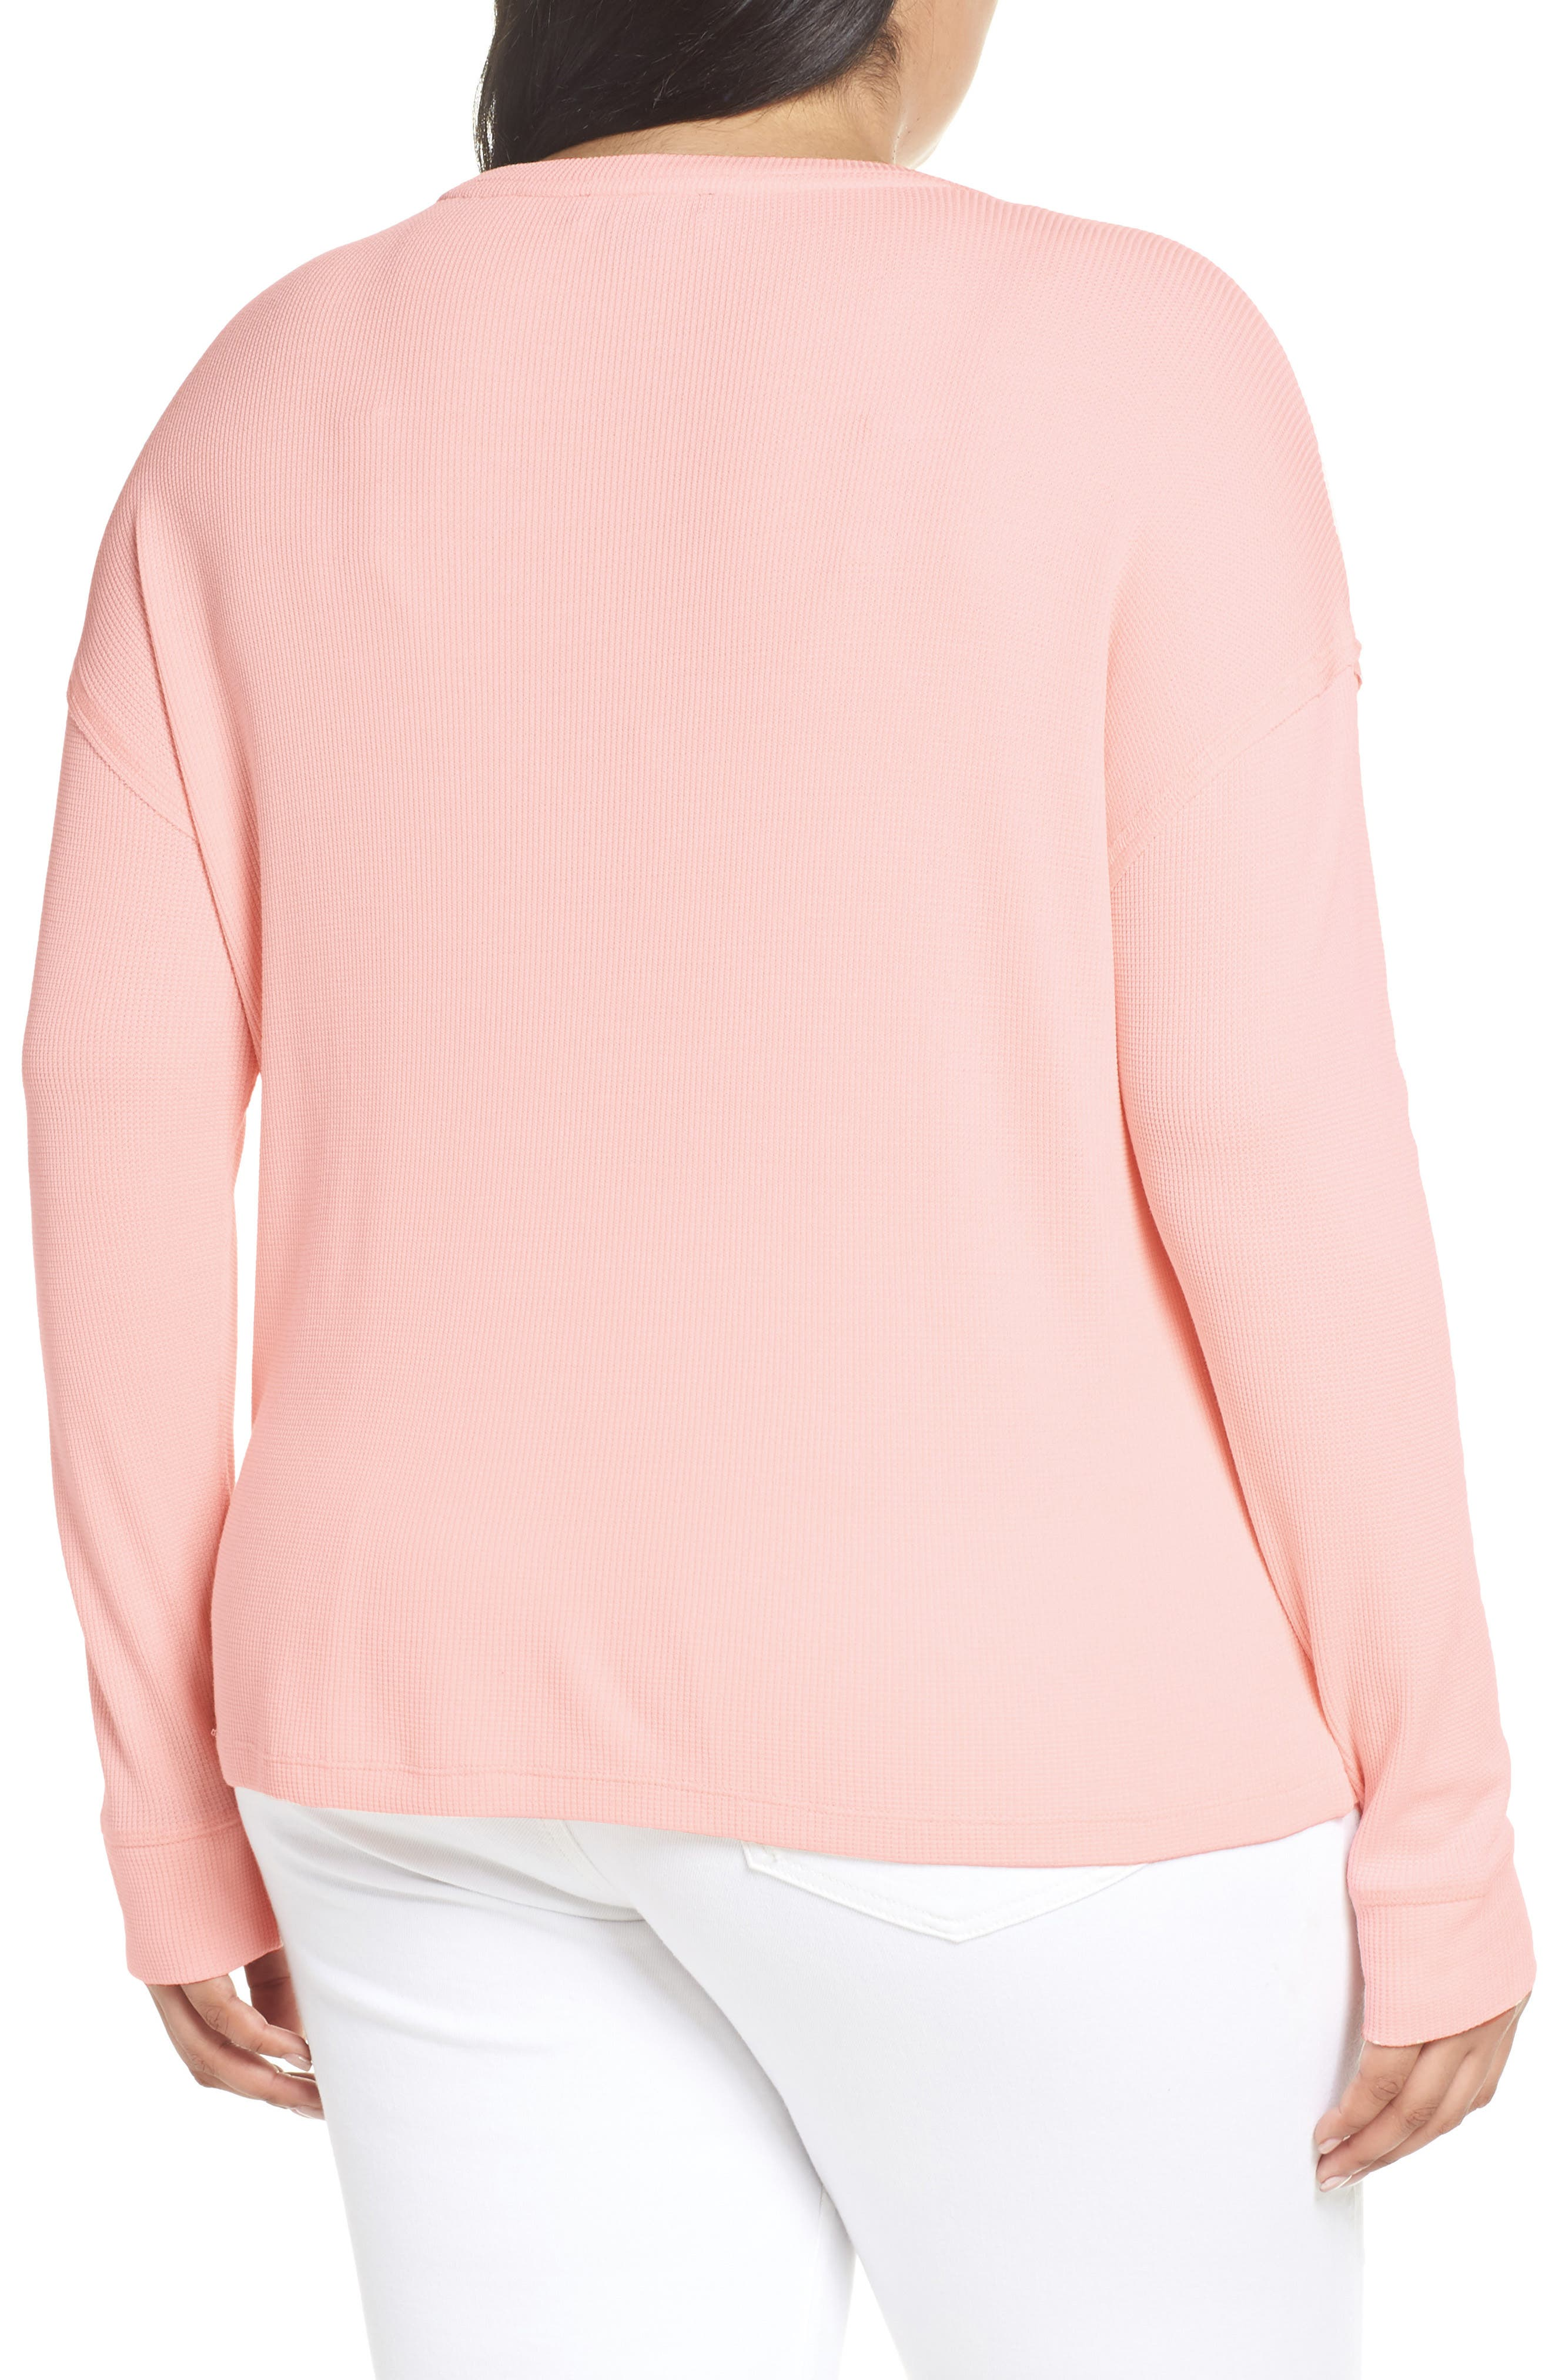 Daybreak Thermal Tee,                             Alternate thumbnail 2, color,                             PINK FIZZ